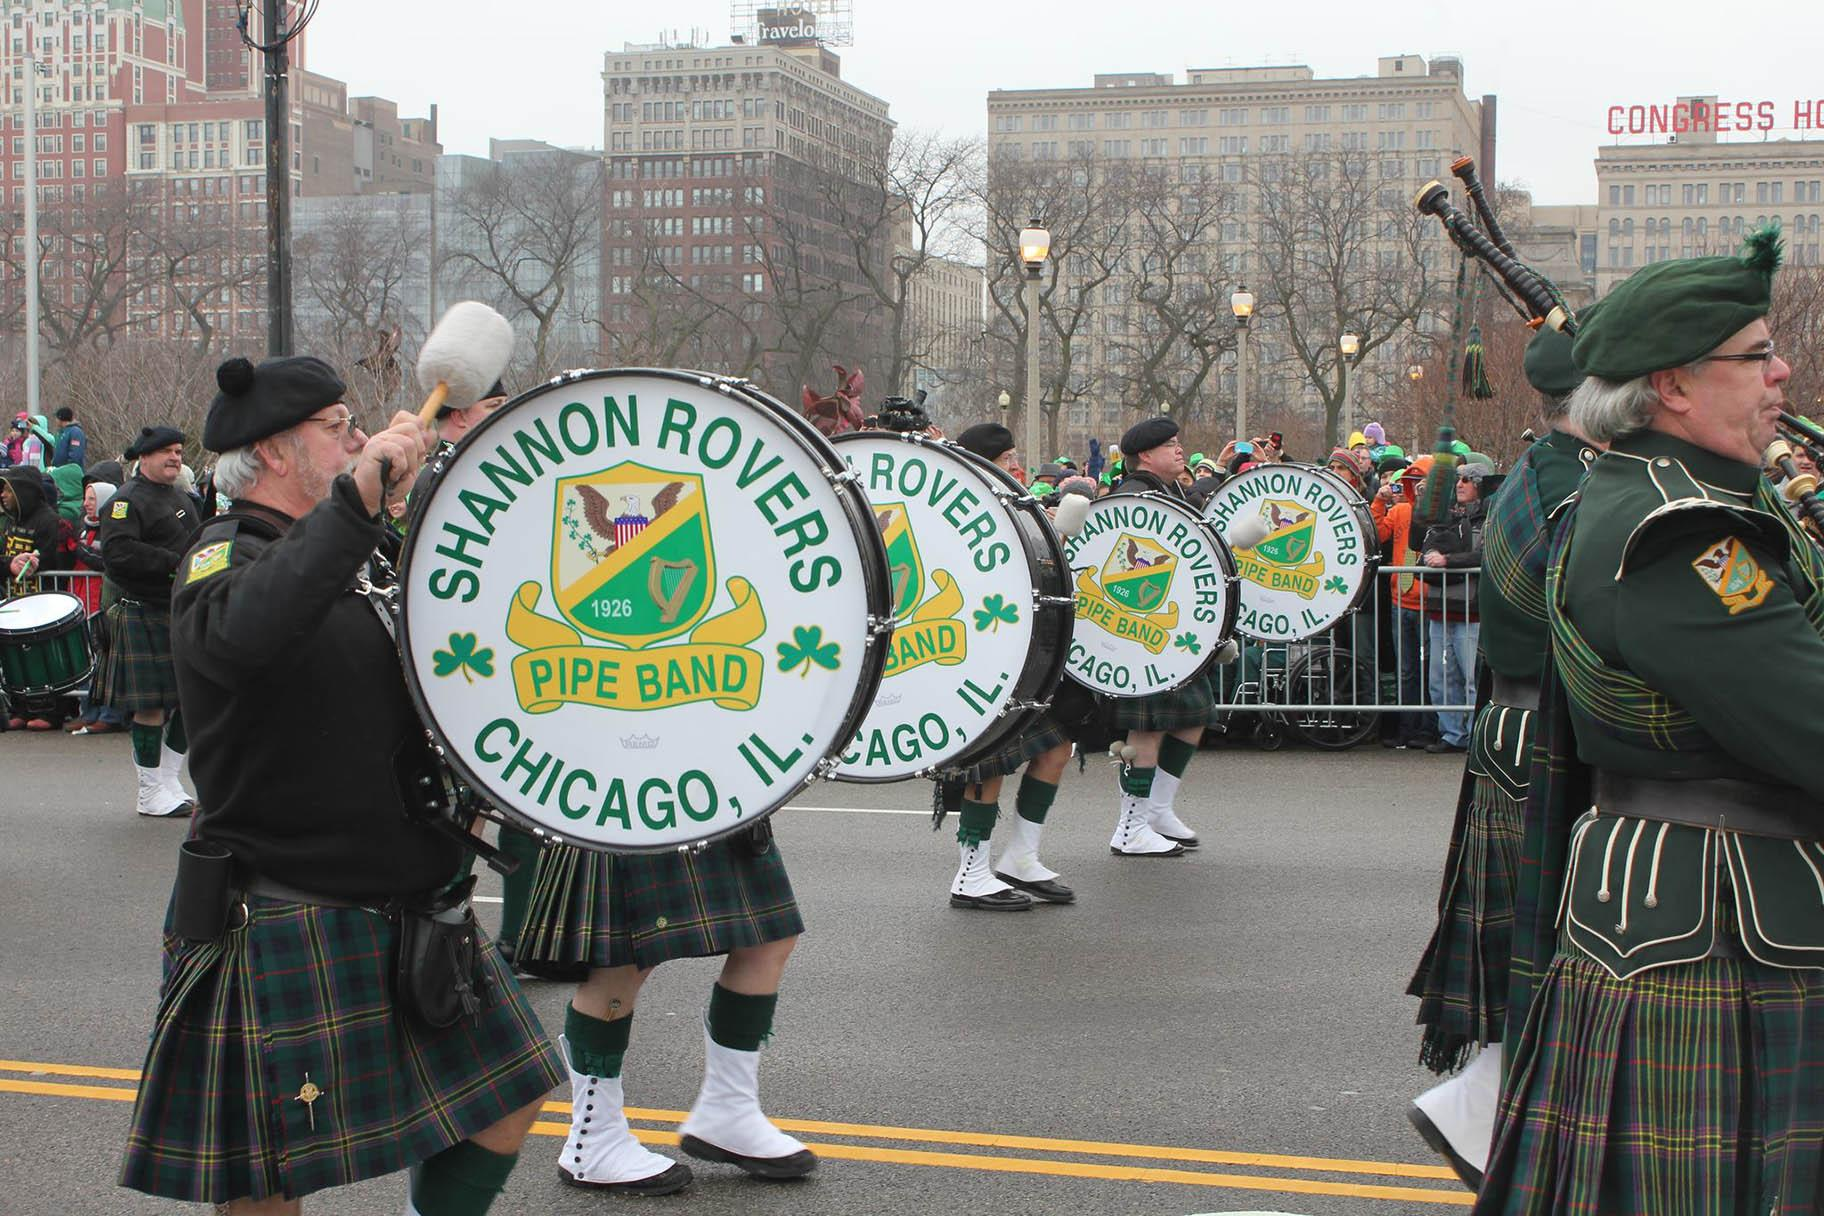 The Shannon Rovers Irish Pipe Band performs in Chicago. (Facebook photo)